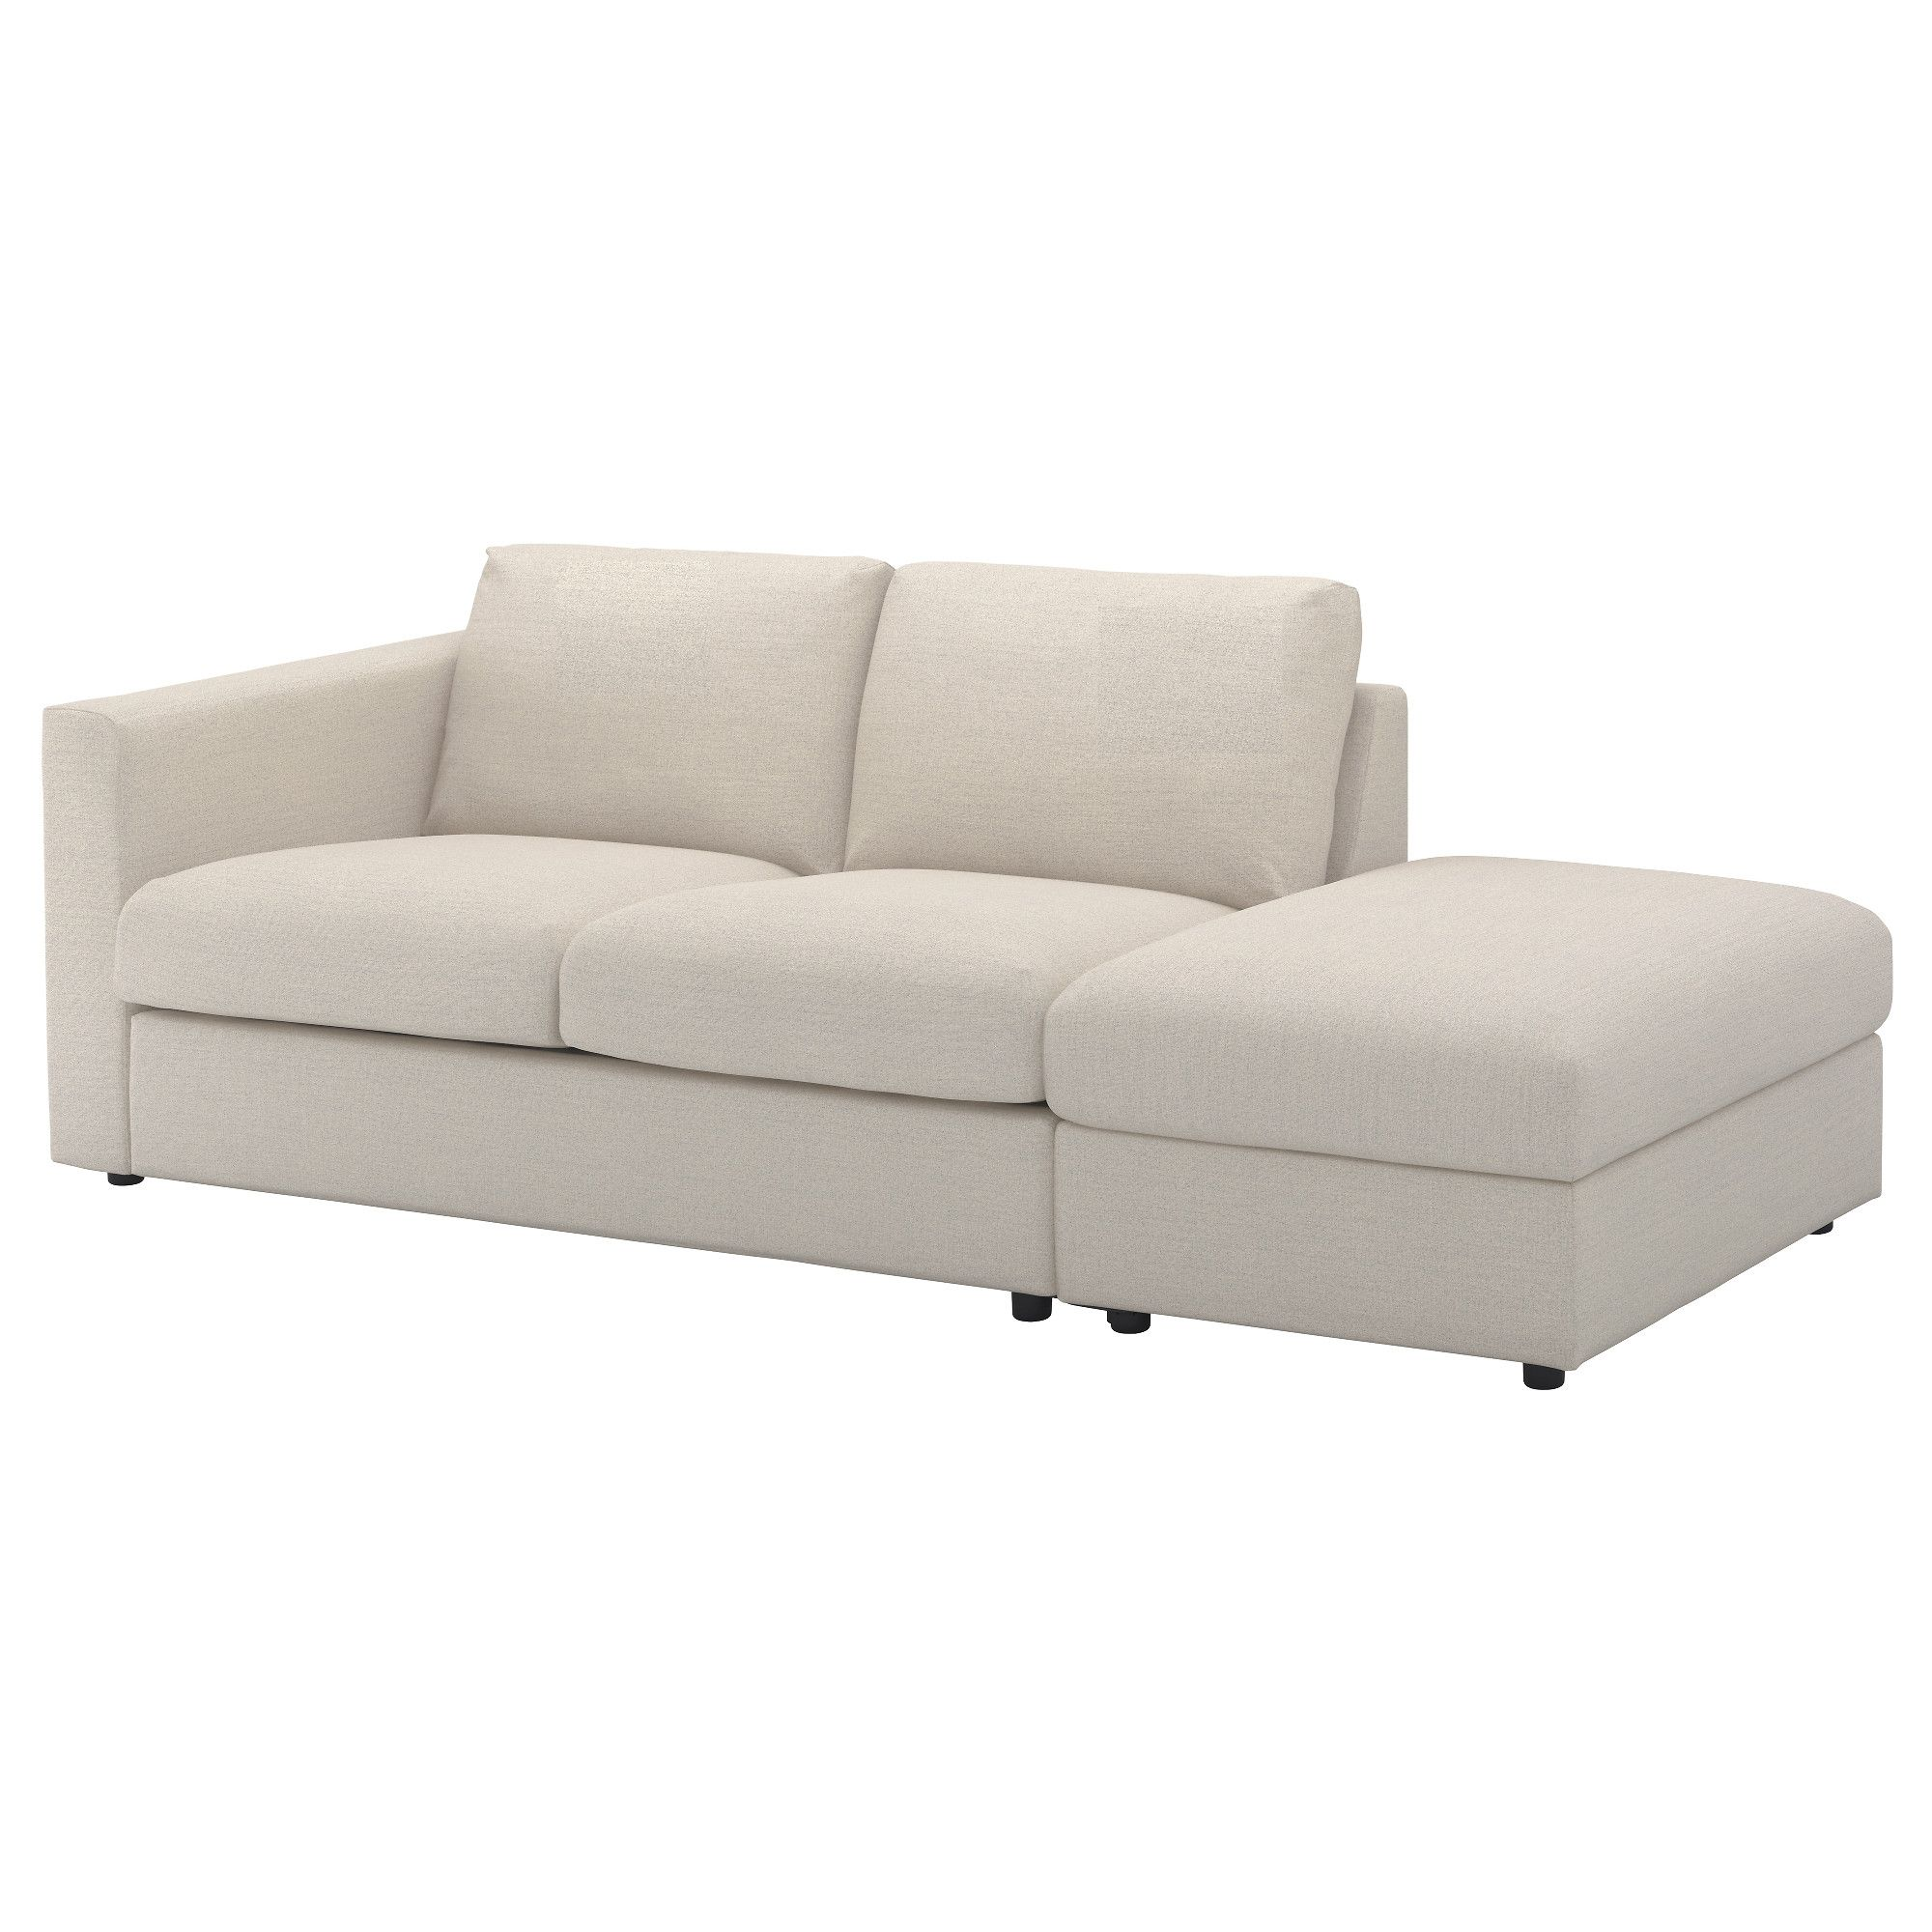 Dauerschläfer Sofa Furniture And Home Furnishings Products Ikea Vimle Sofa Cozy